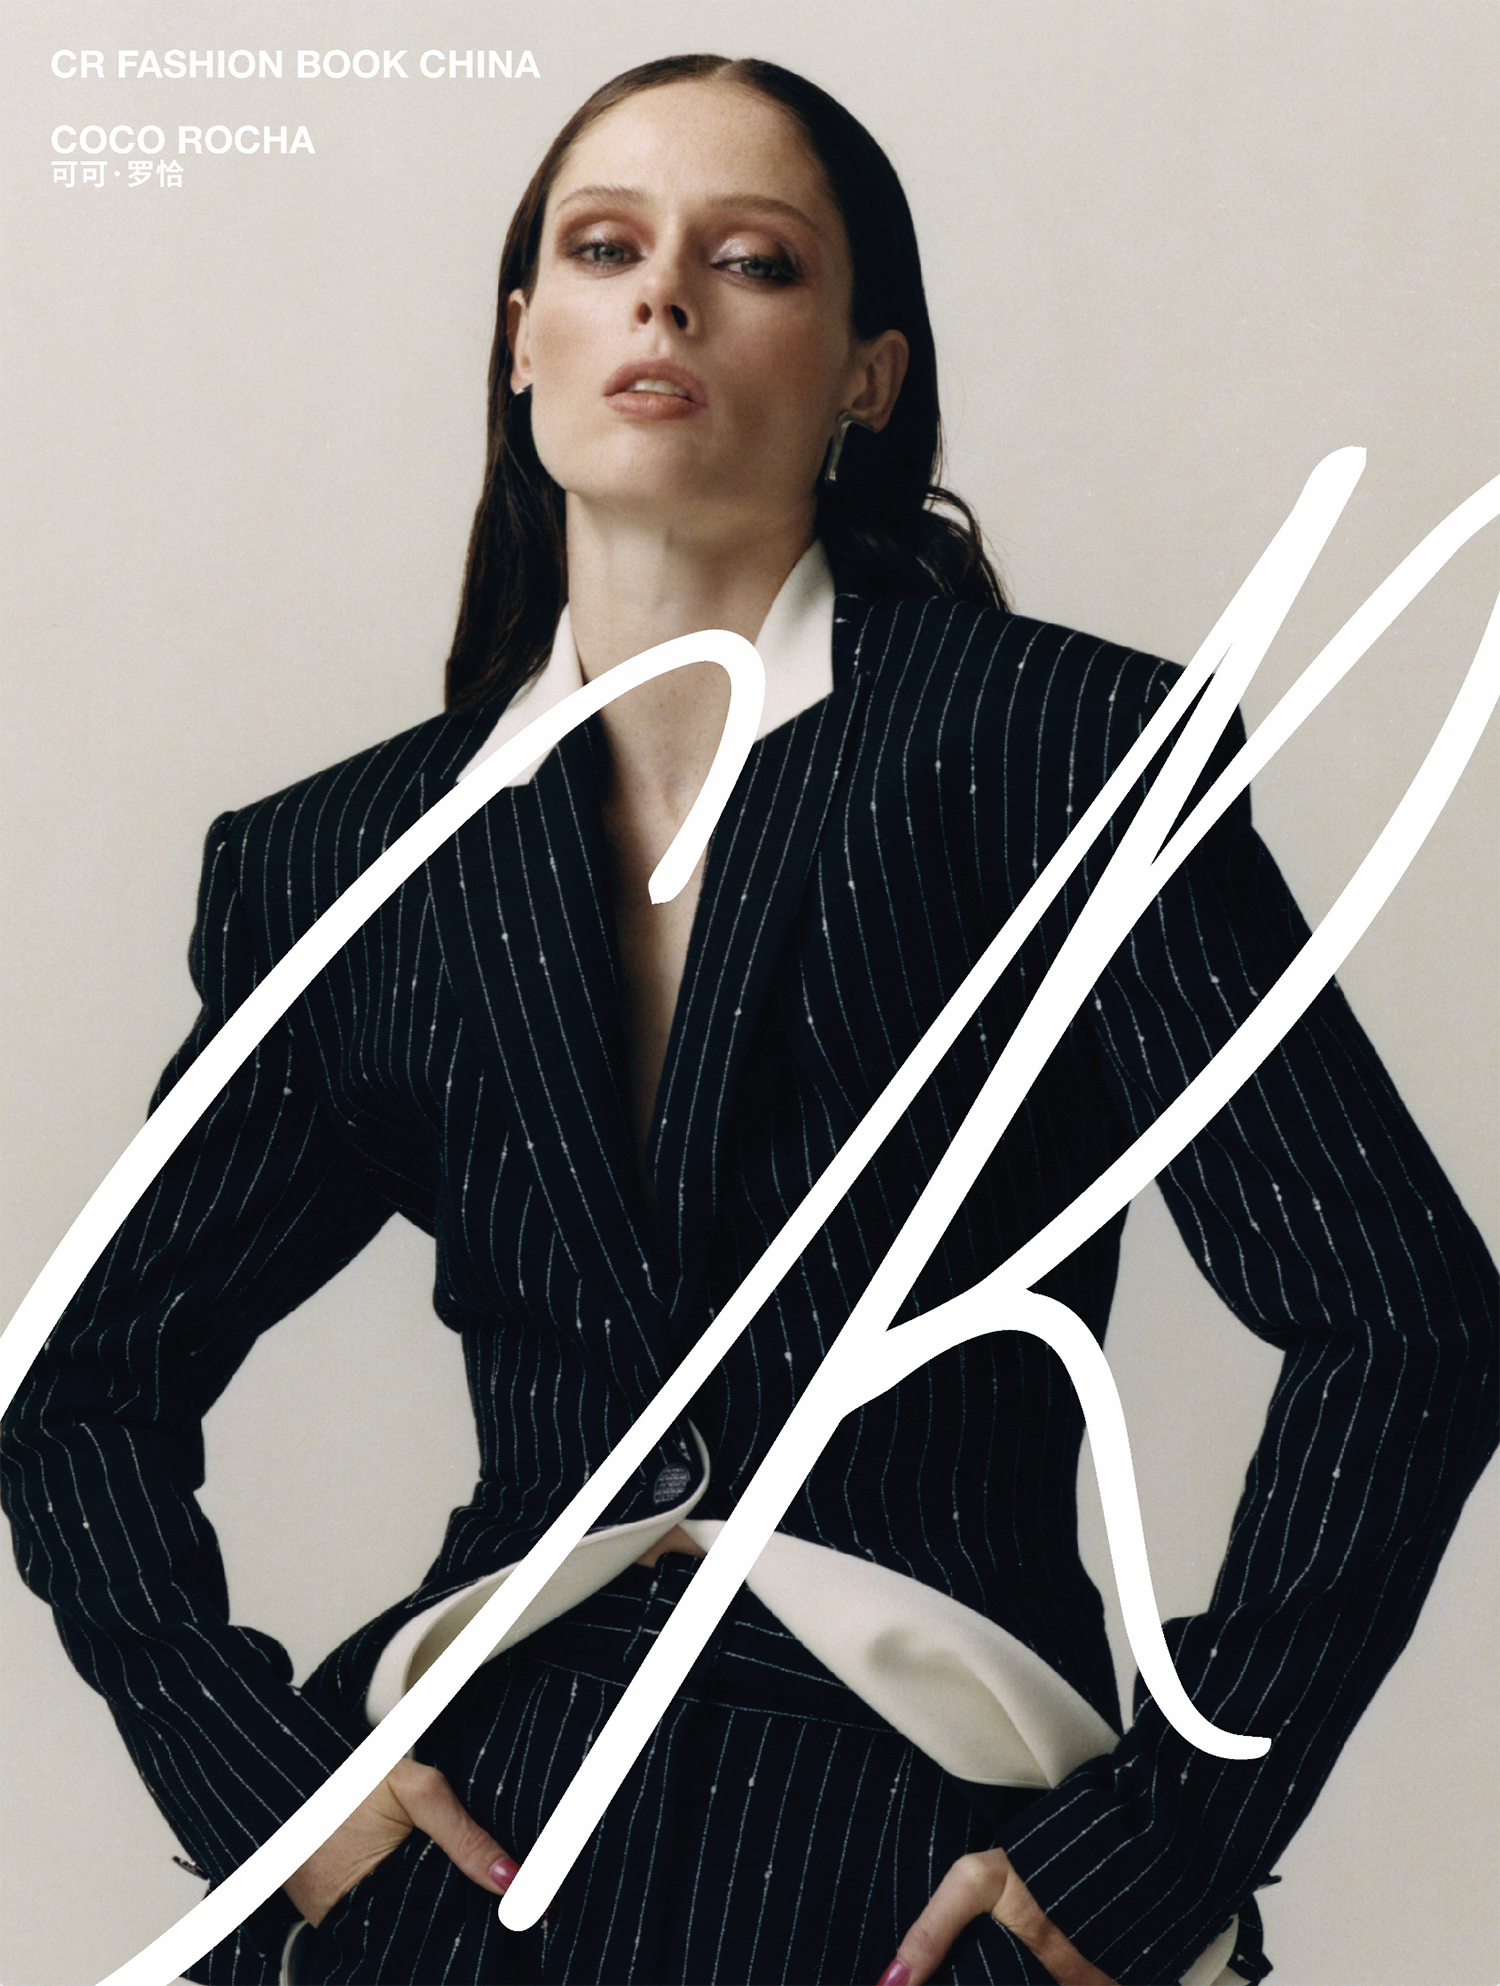 Coco Rocha covers CR Fashion Book China Issue 03 by Johnson Lui